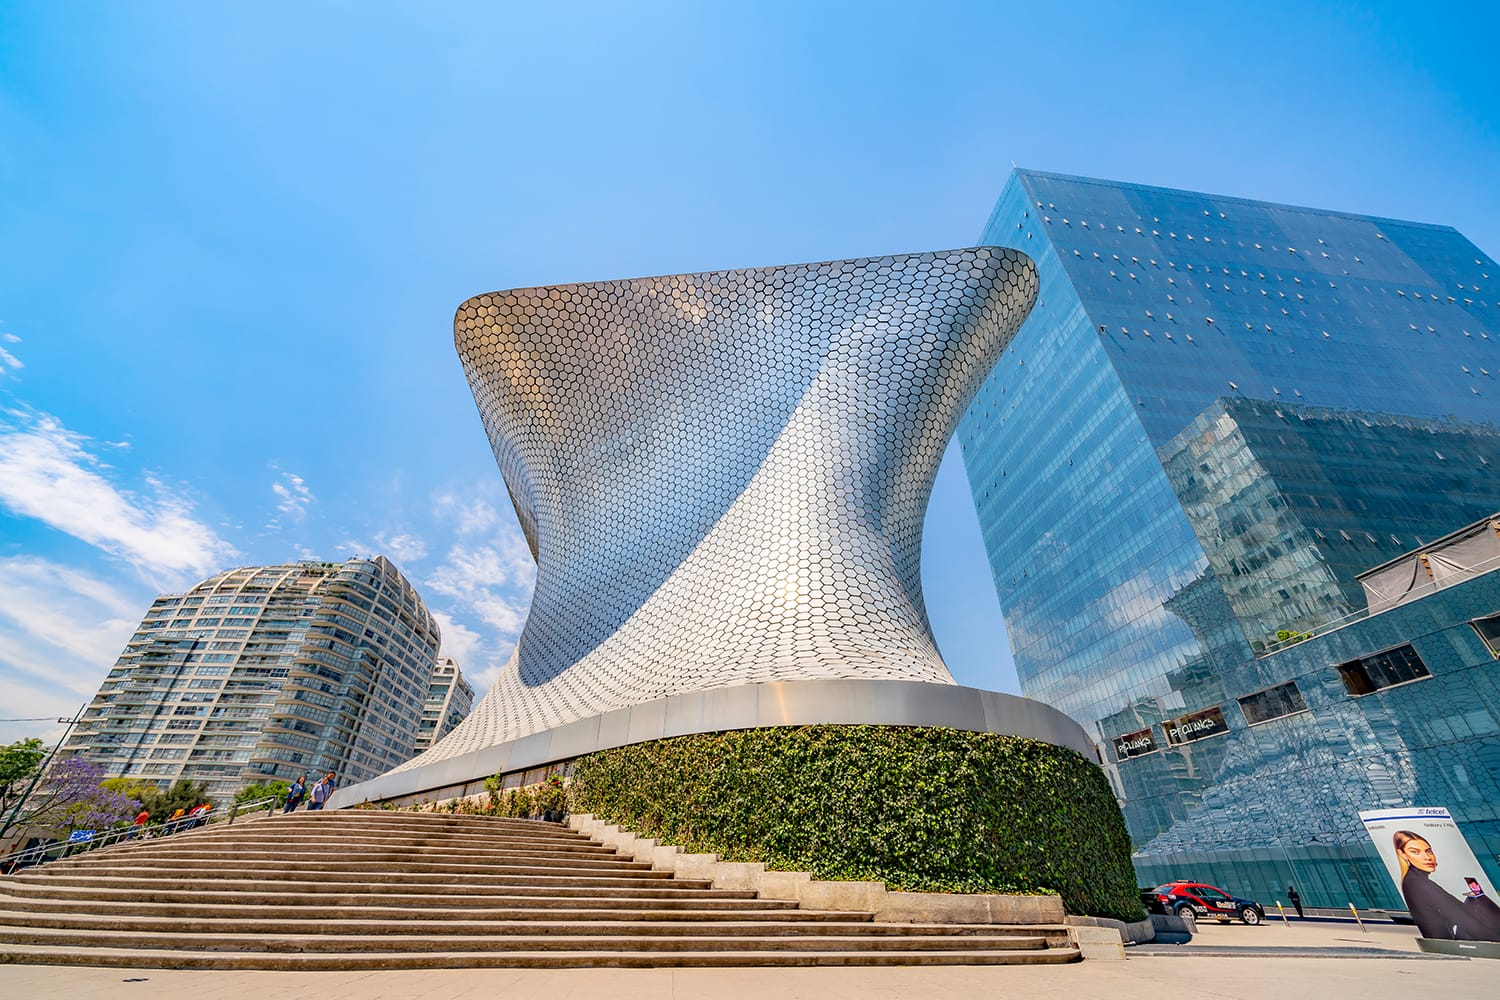 The Museo Soumaya is a private museum in Mexico City